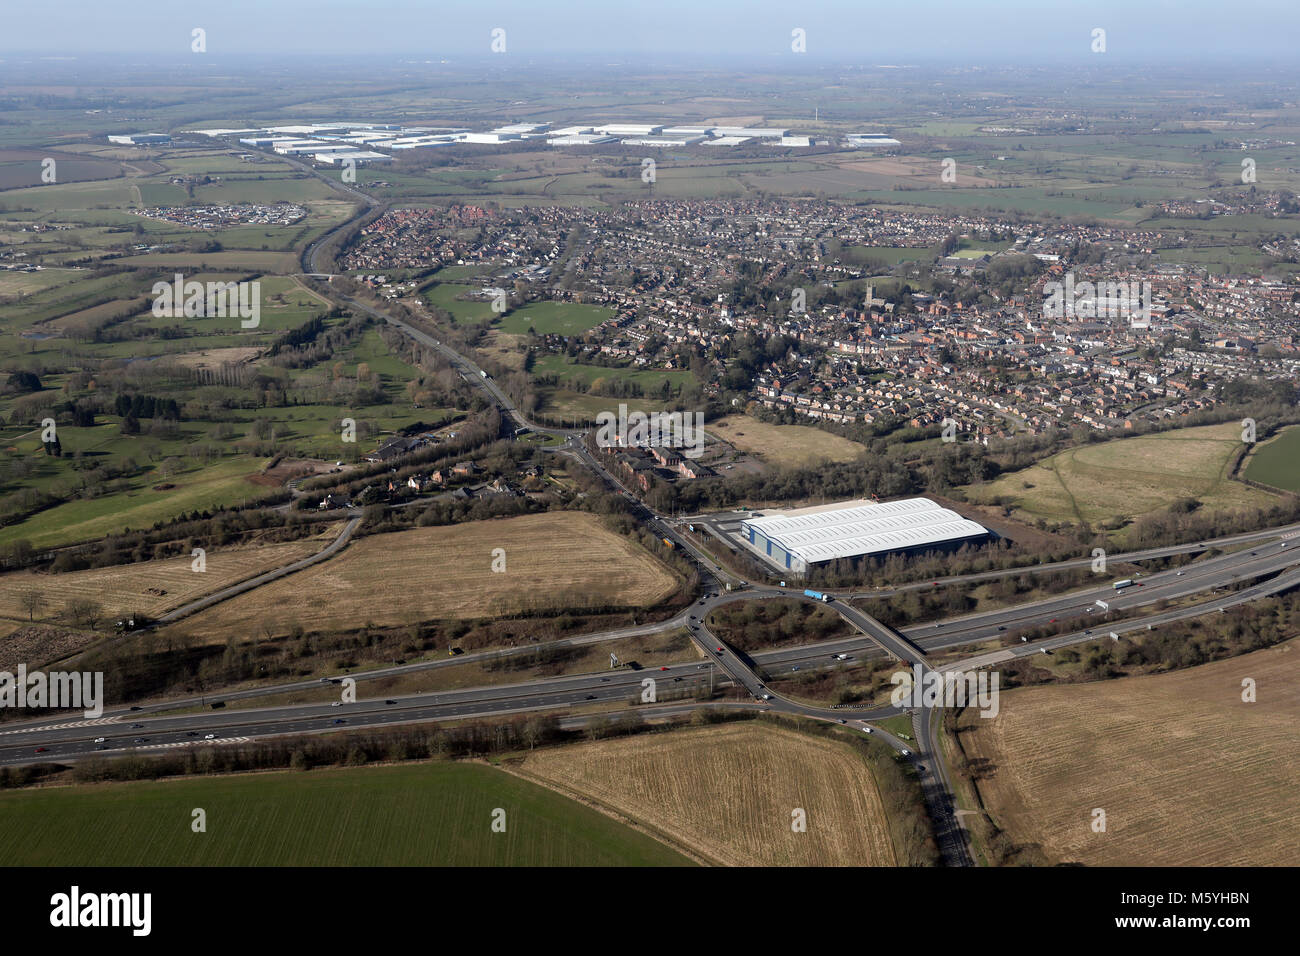 aerial view of Junction 20 of the M1 motorway at Lutterworth with Magna Park in background, Leicestershire, UK Stock Photo